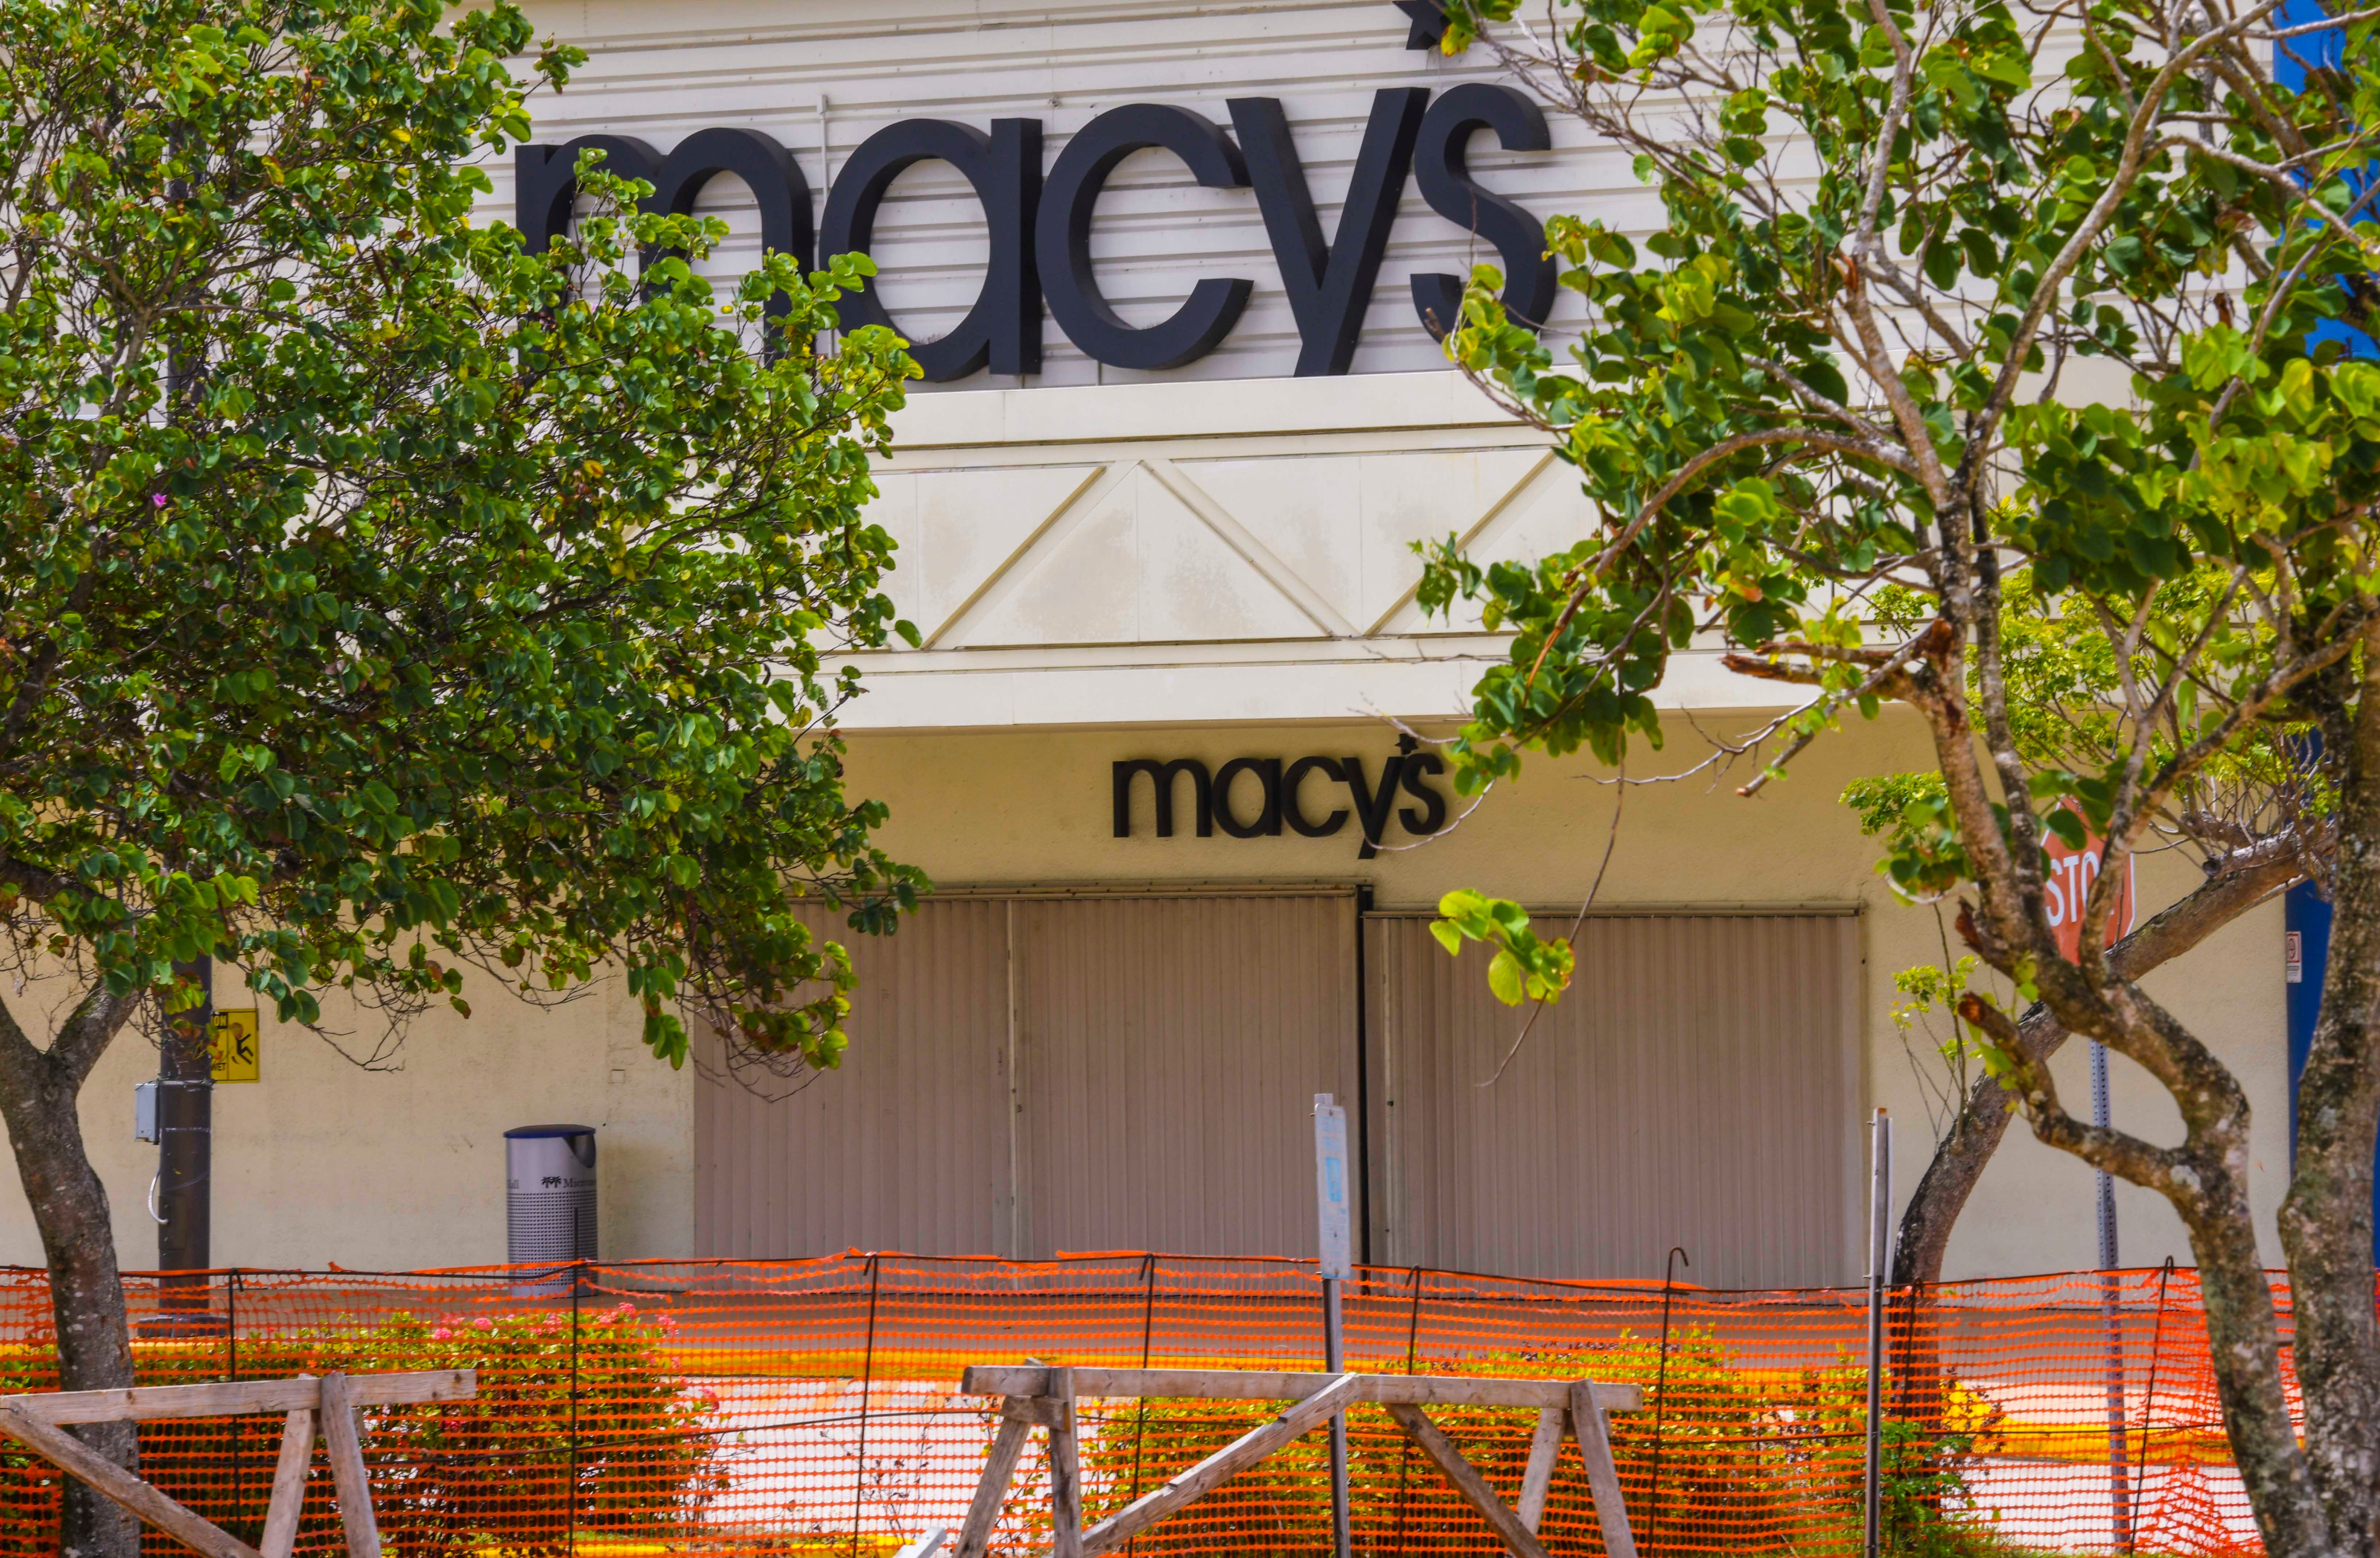 The entrance to the Macy's store remains shuttered as construction work continues in the parking lot of the Micronesia Mall in Dededo on Thursday, May 7, 2020.